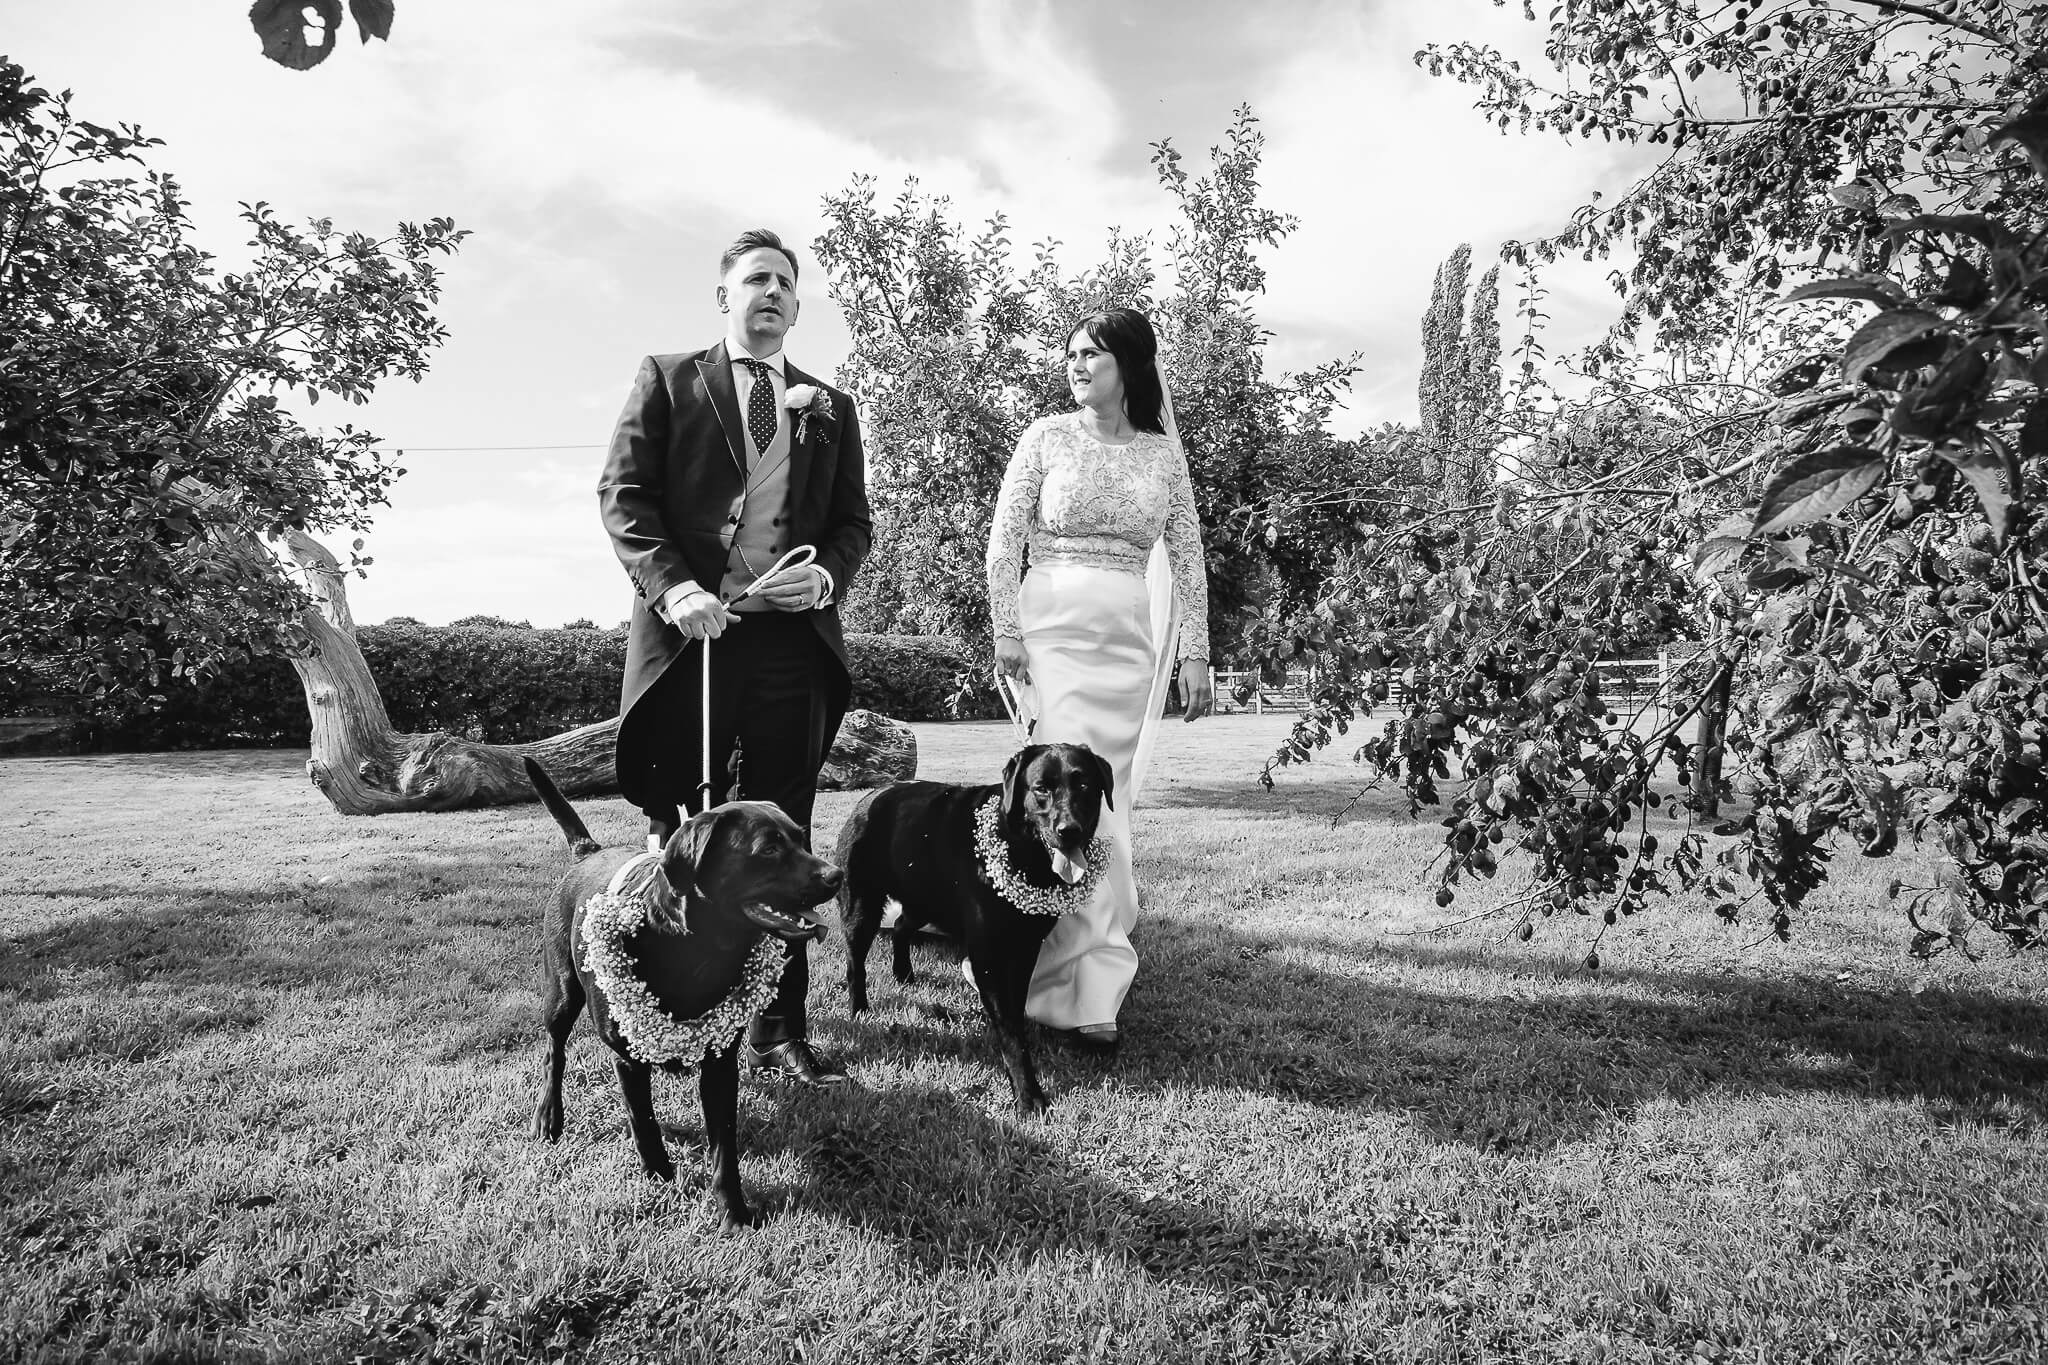 best-wedding-photographers-uk-europe-stanbury-photography-092